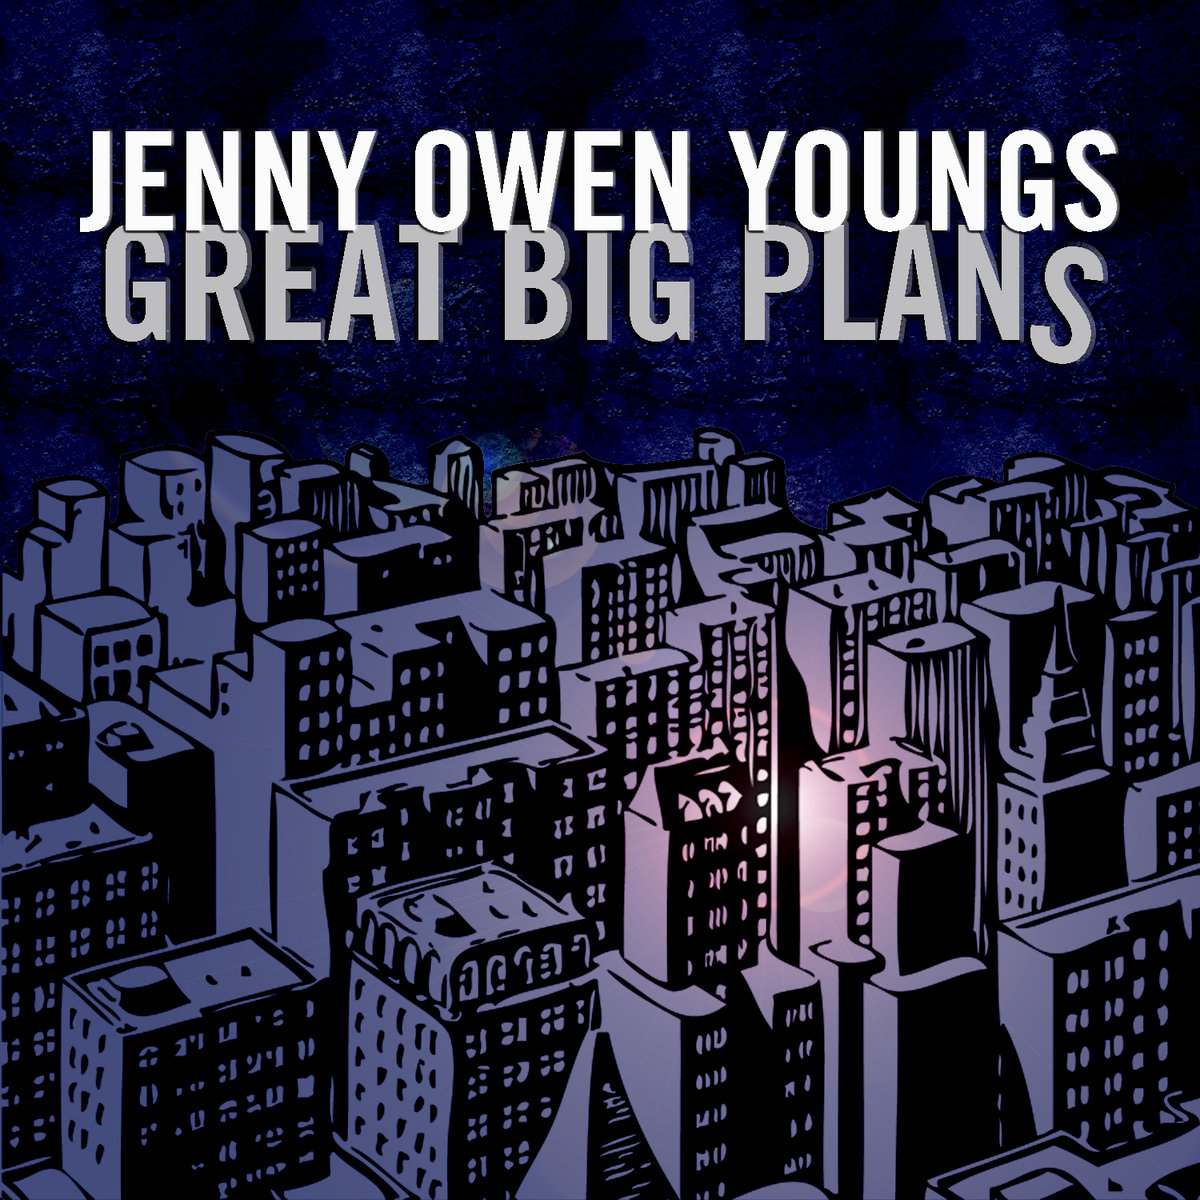 Great Big Plans - July 26, 2011